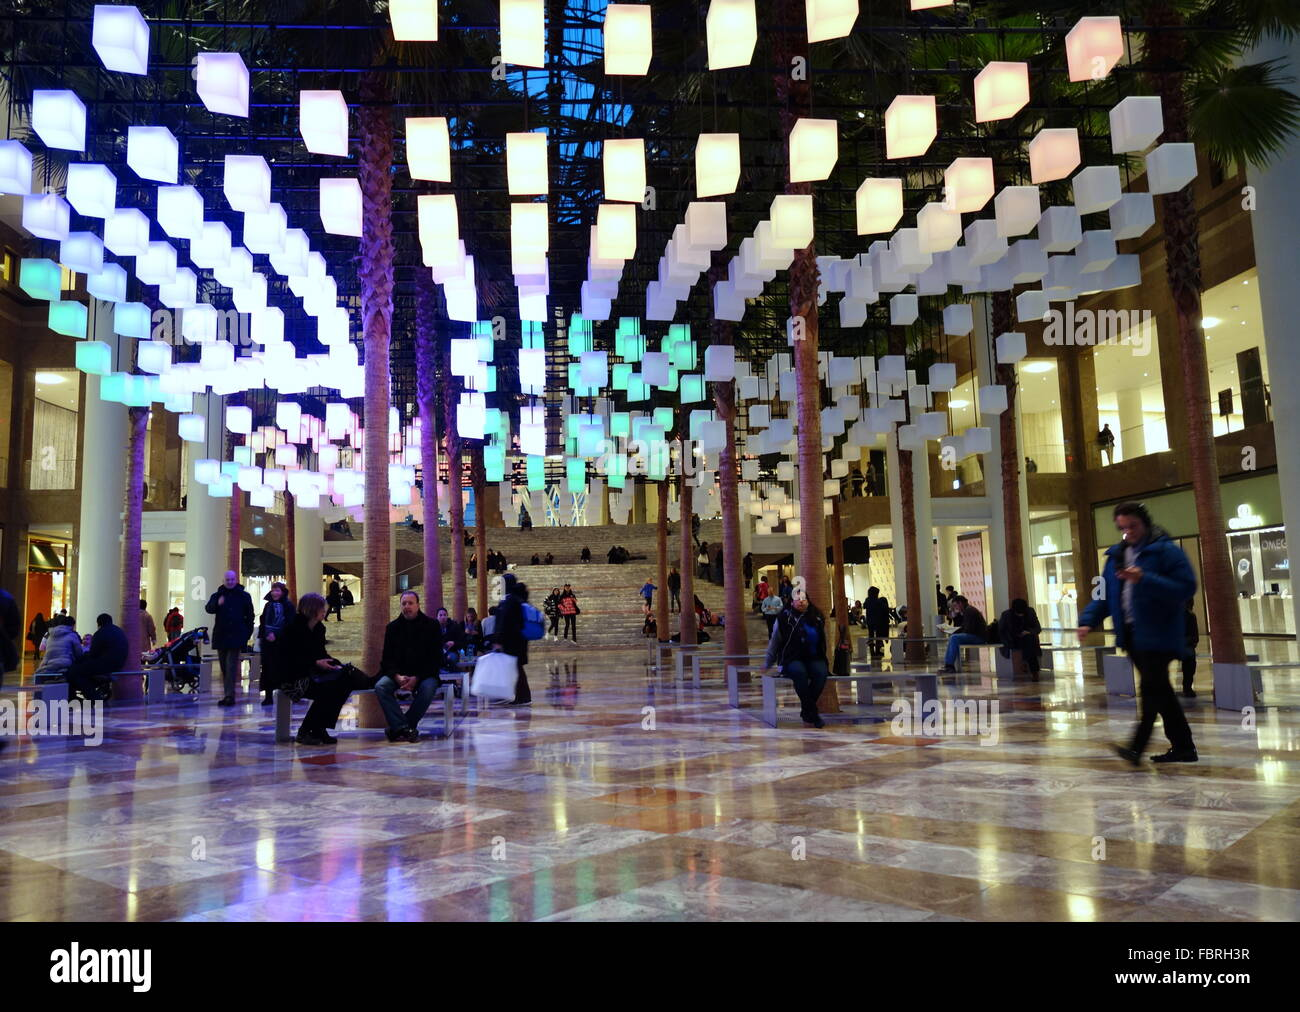 spectacular lighting. luminaries a spectacular lighting display at the winter garden brookfield place new york city